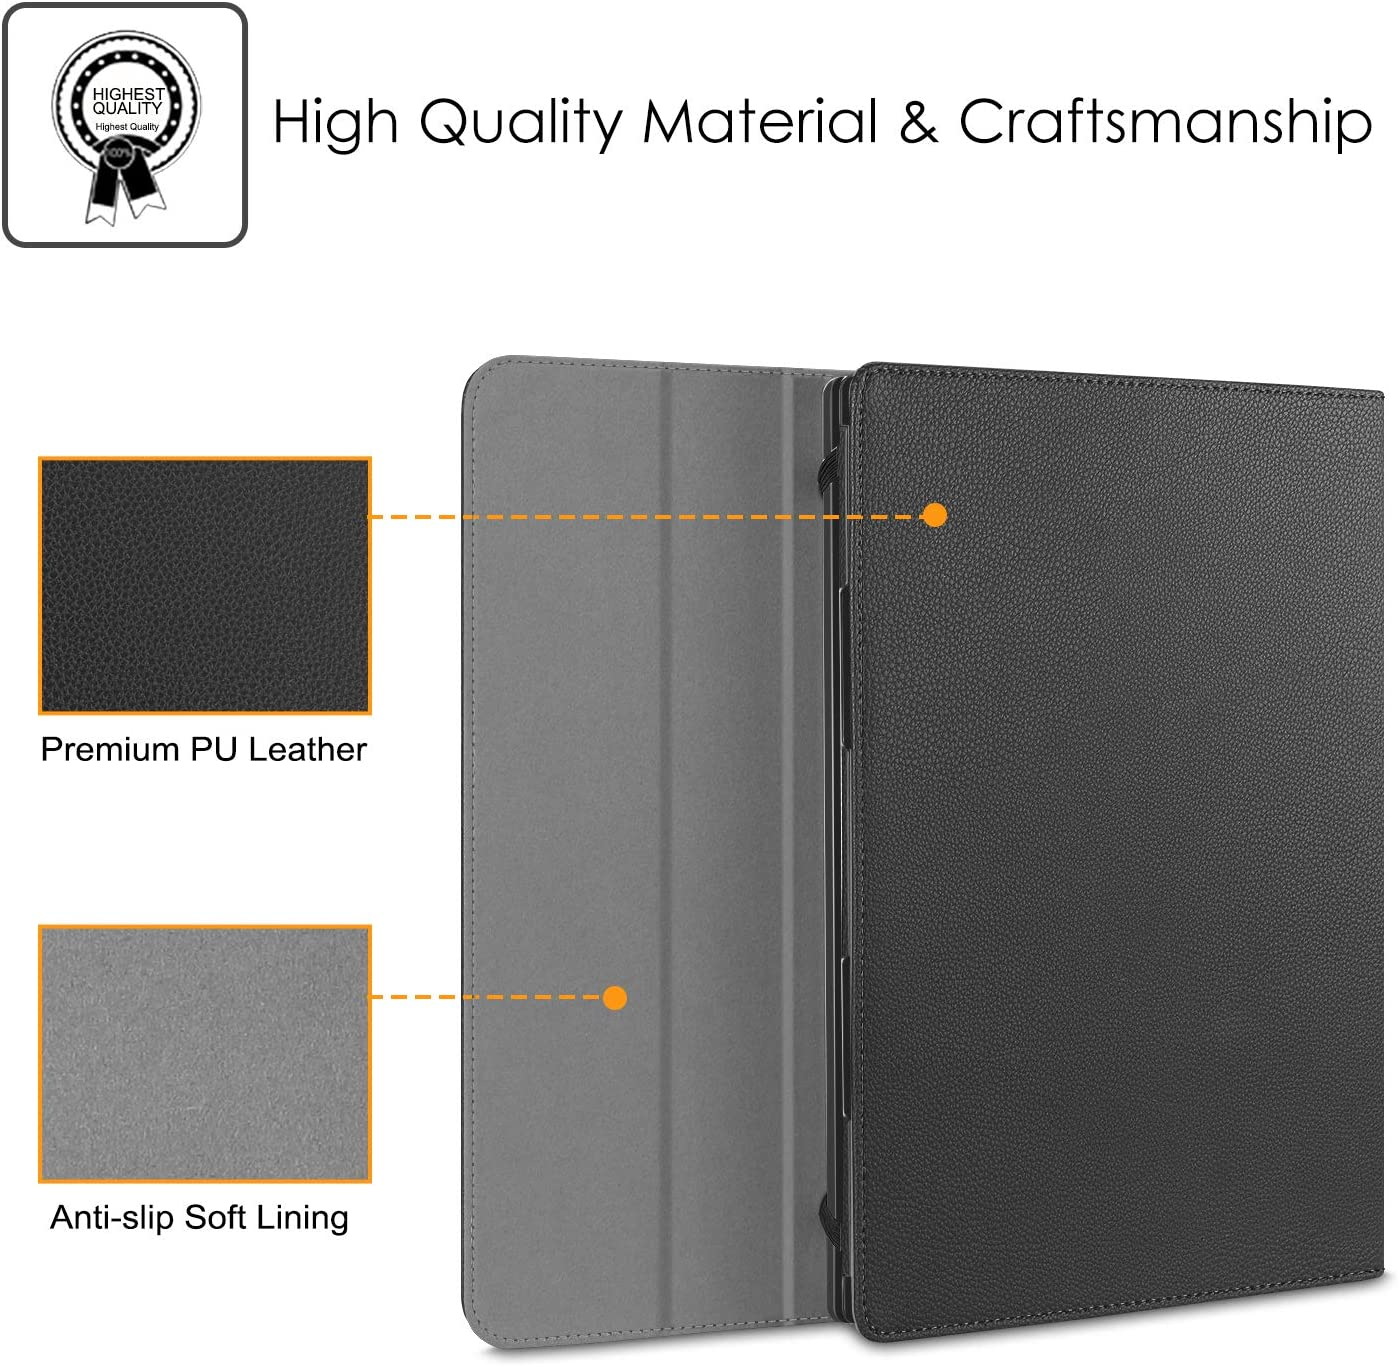 Black Premium PU Leather Protective Portfolio Book Cover Compatible with Samsung Chromebook 3 XE500C13 /& Chromebook 2 XE503C12//XE500C12 Fintie Sleeve Case for 11.6 Samsung Chromebook 4 XE310XBA